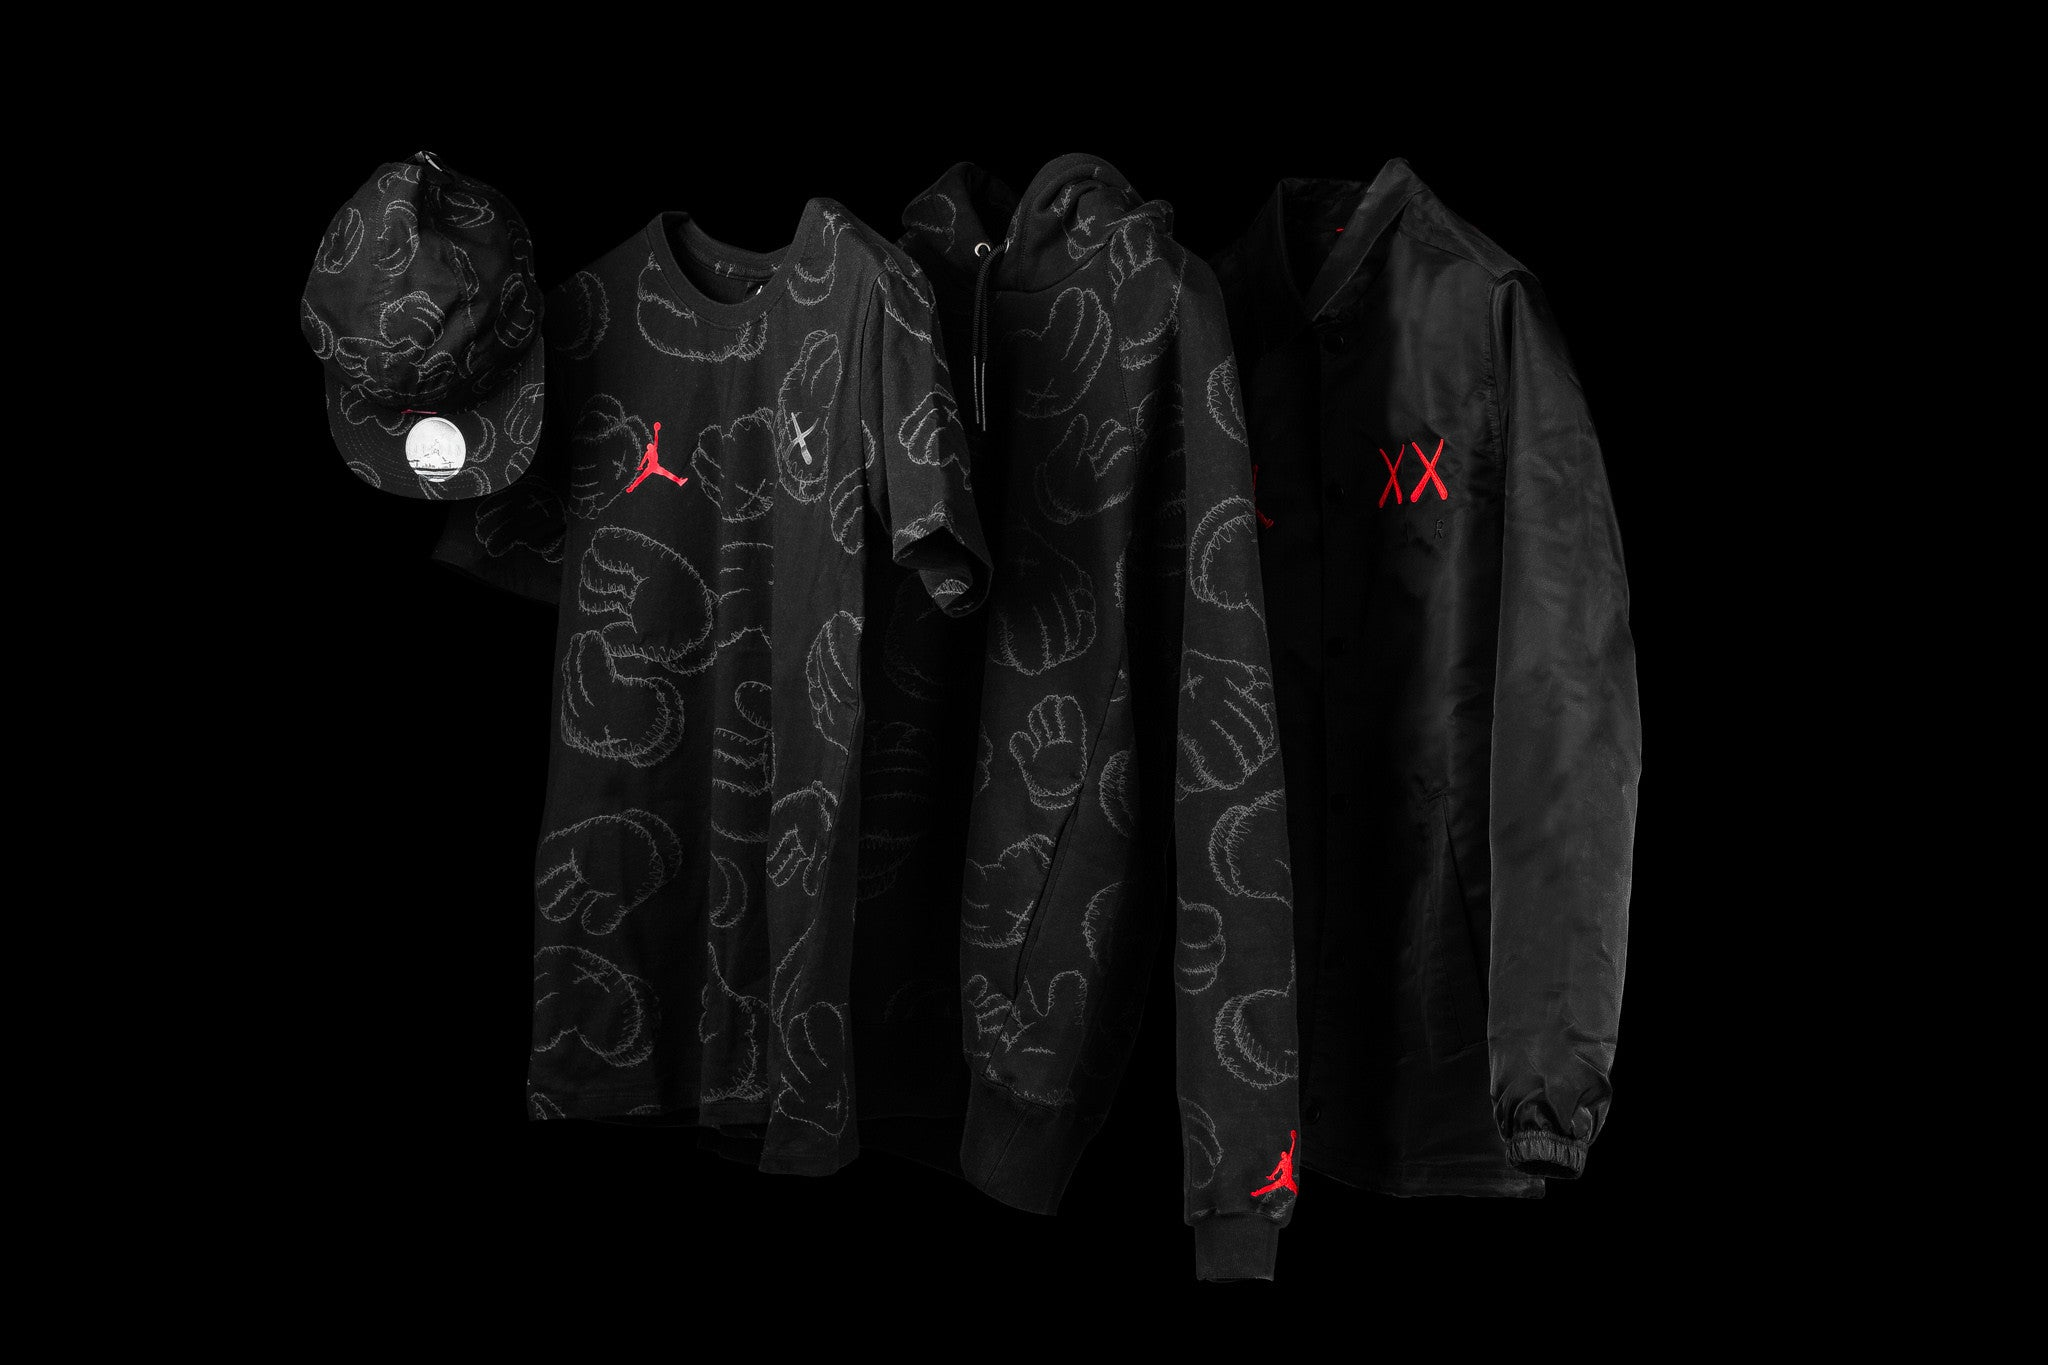 new lifestyle nice cheap undefeated x KAWS x Jordan Apparel 04.16.17 In Store Only at Yorkville ...